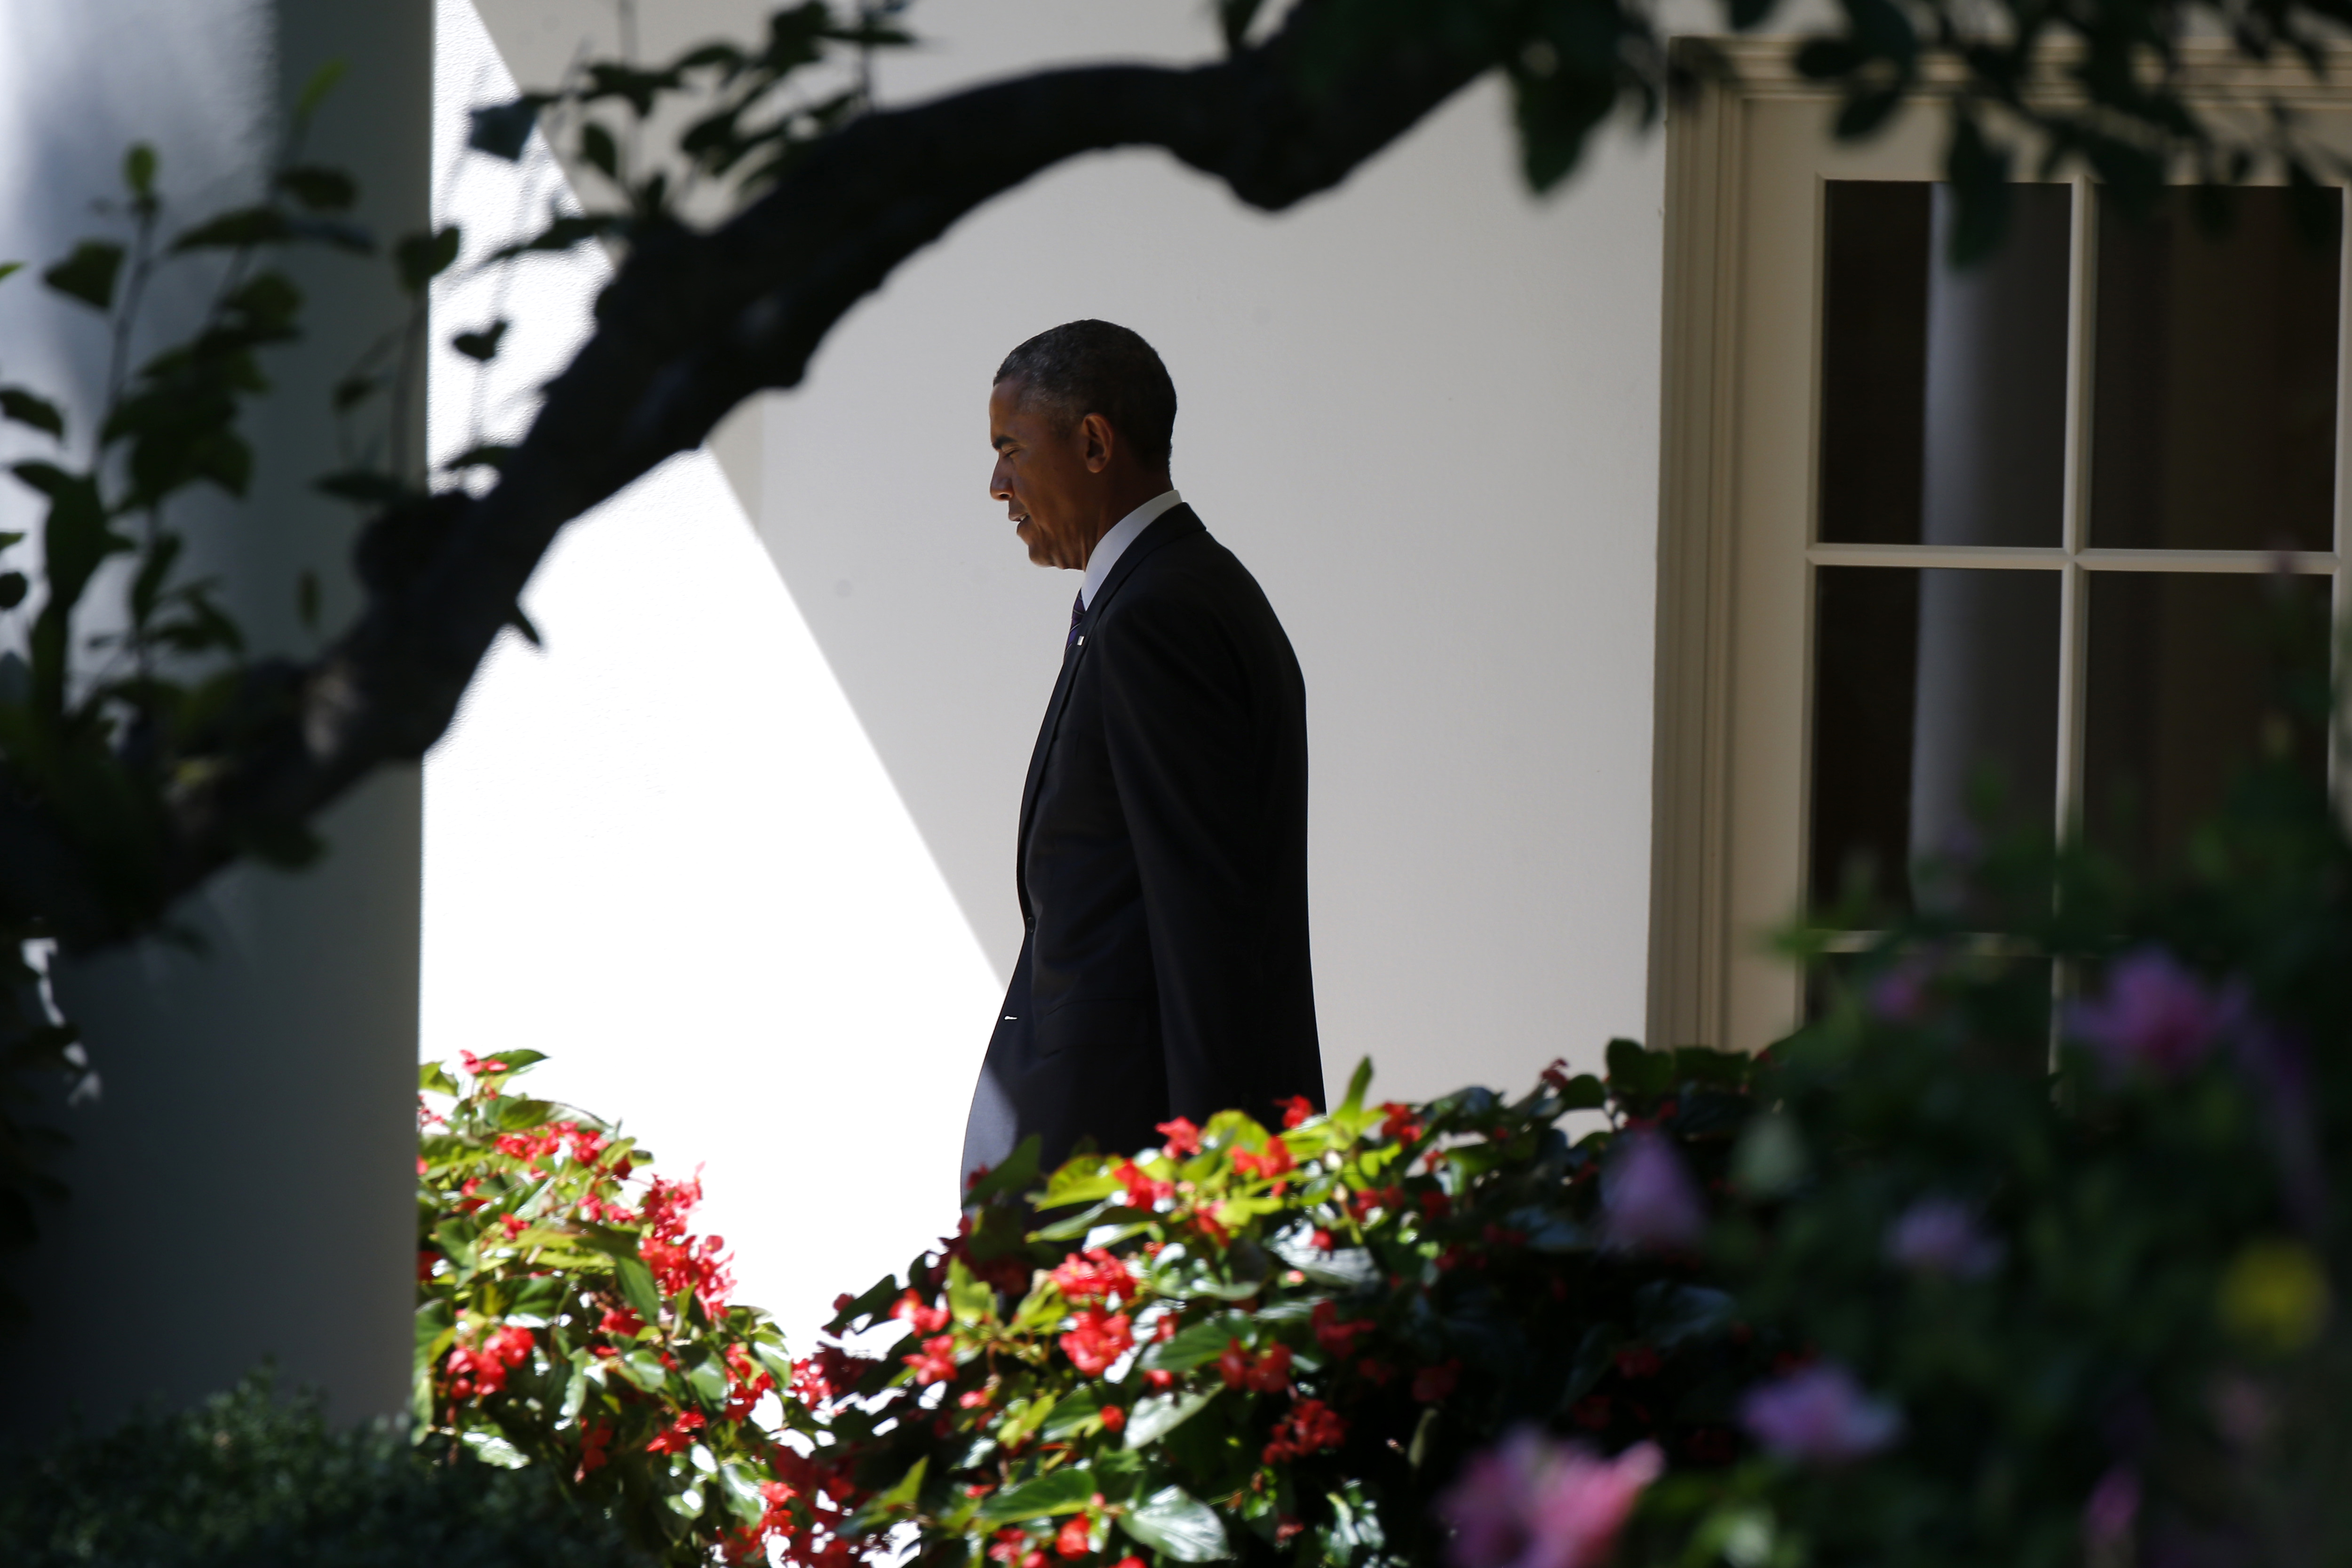 President Barack Obama walks out of the Oval Office towards the South Lawn of the White House in Washington, on Aug. 29, 2014.